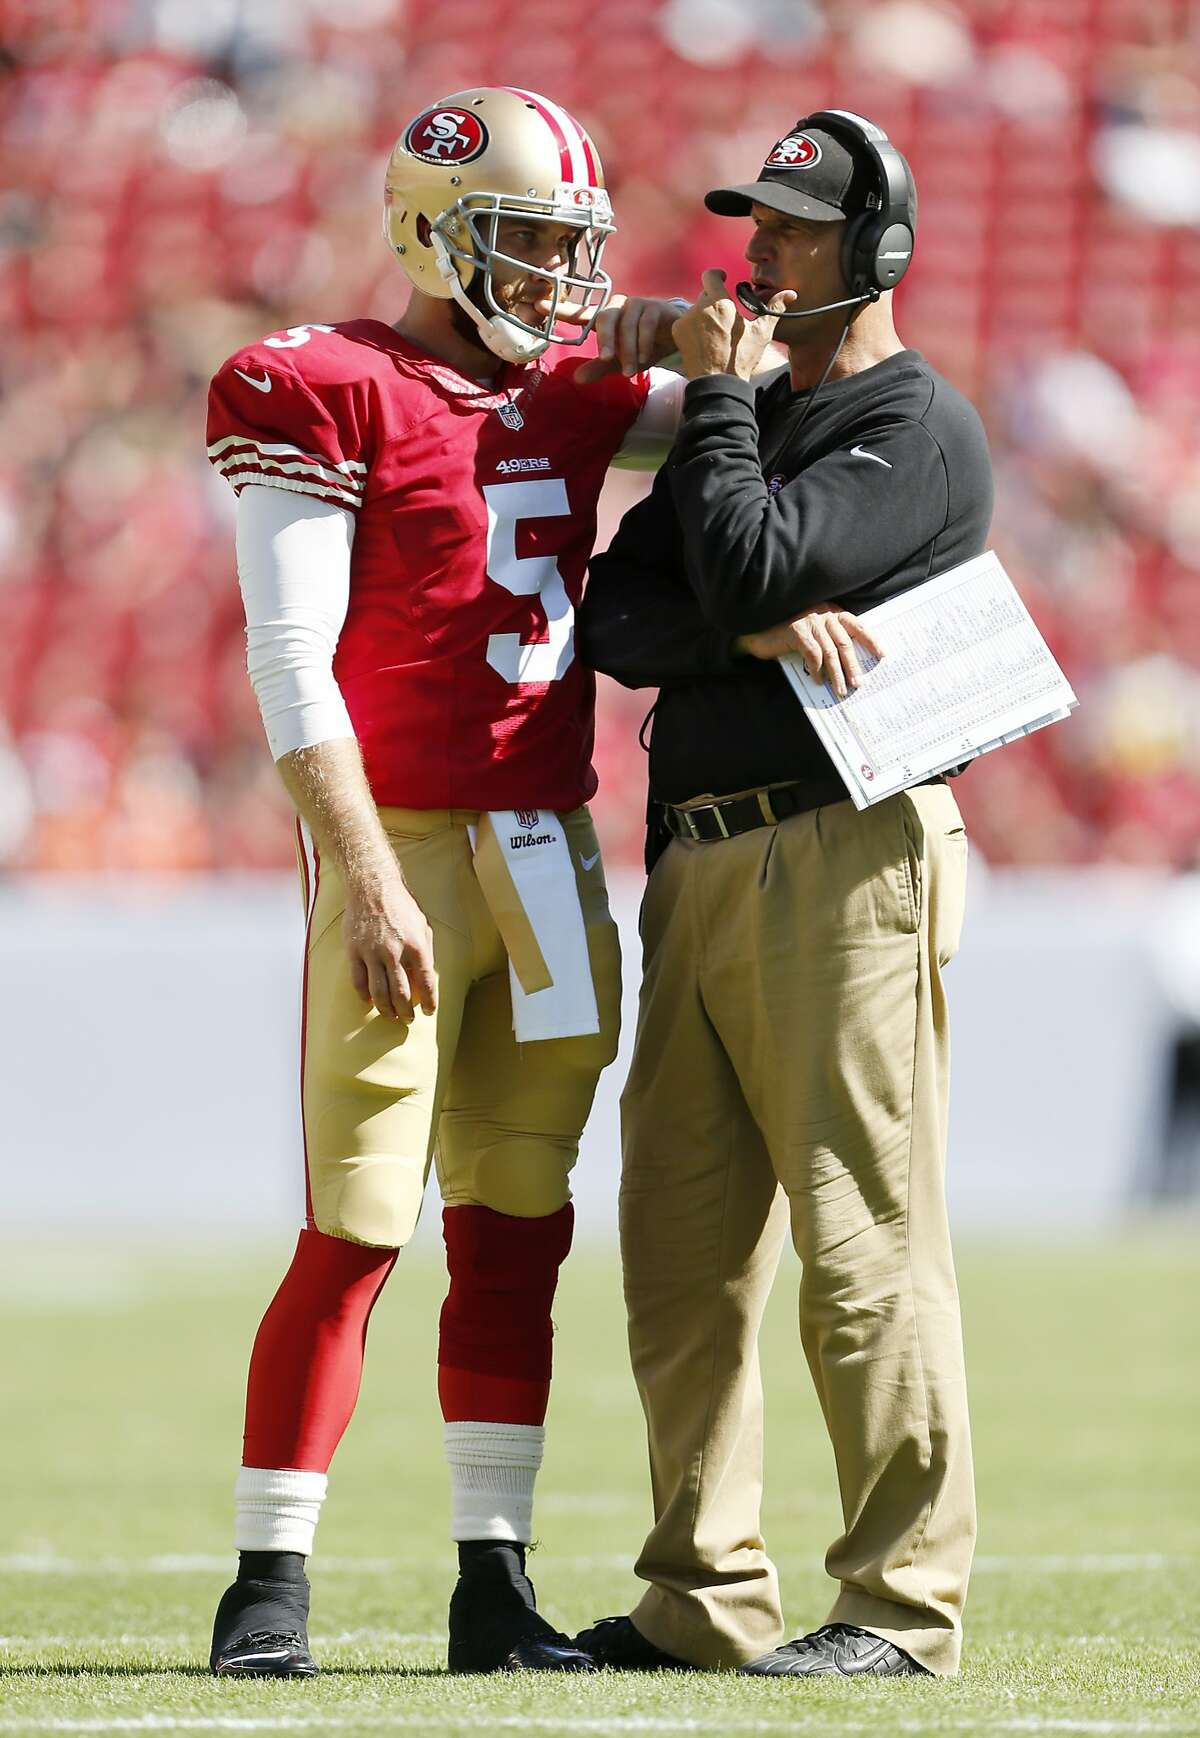 San Francisco 49ers head coach Jim Harbaugh, right, talks with quarterback McLead Bethel-Thompson during the fourth quarter of their game against the Denver Broncos on Sunday, August 17, 2014 in Santa Clara, Calif.